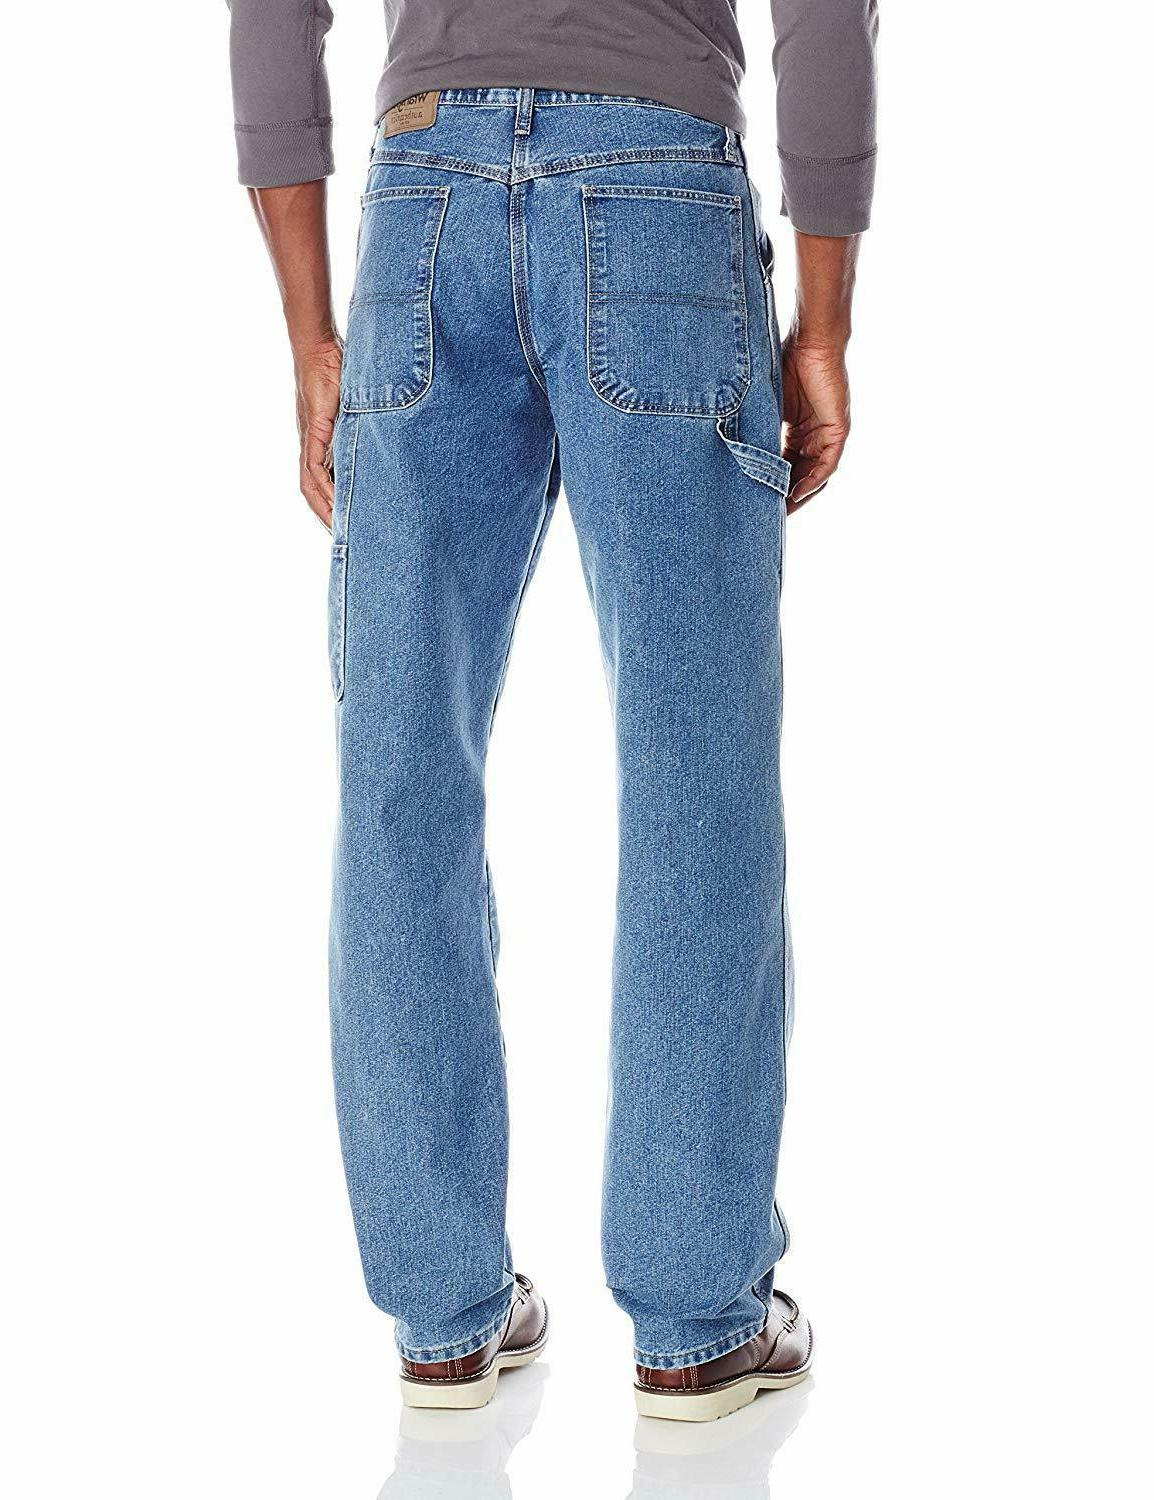 Wrangler Authentics Carpenter